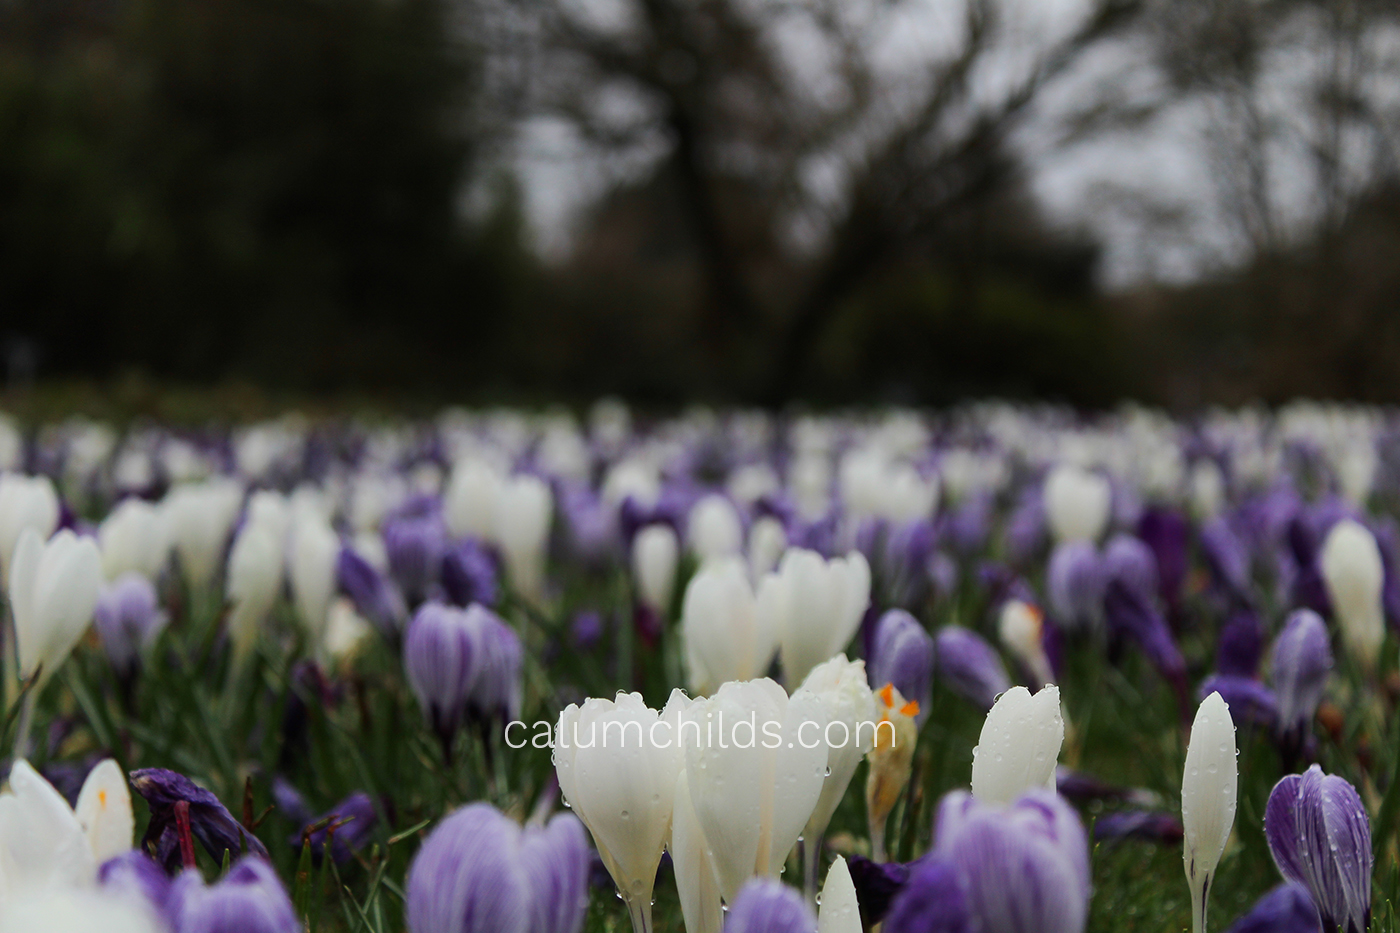 A few white and purple crocuses grow in the foreground, with many more crocuses in the background.